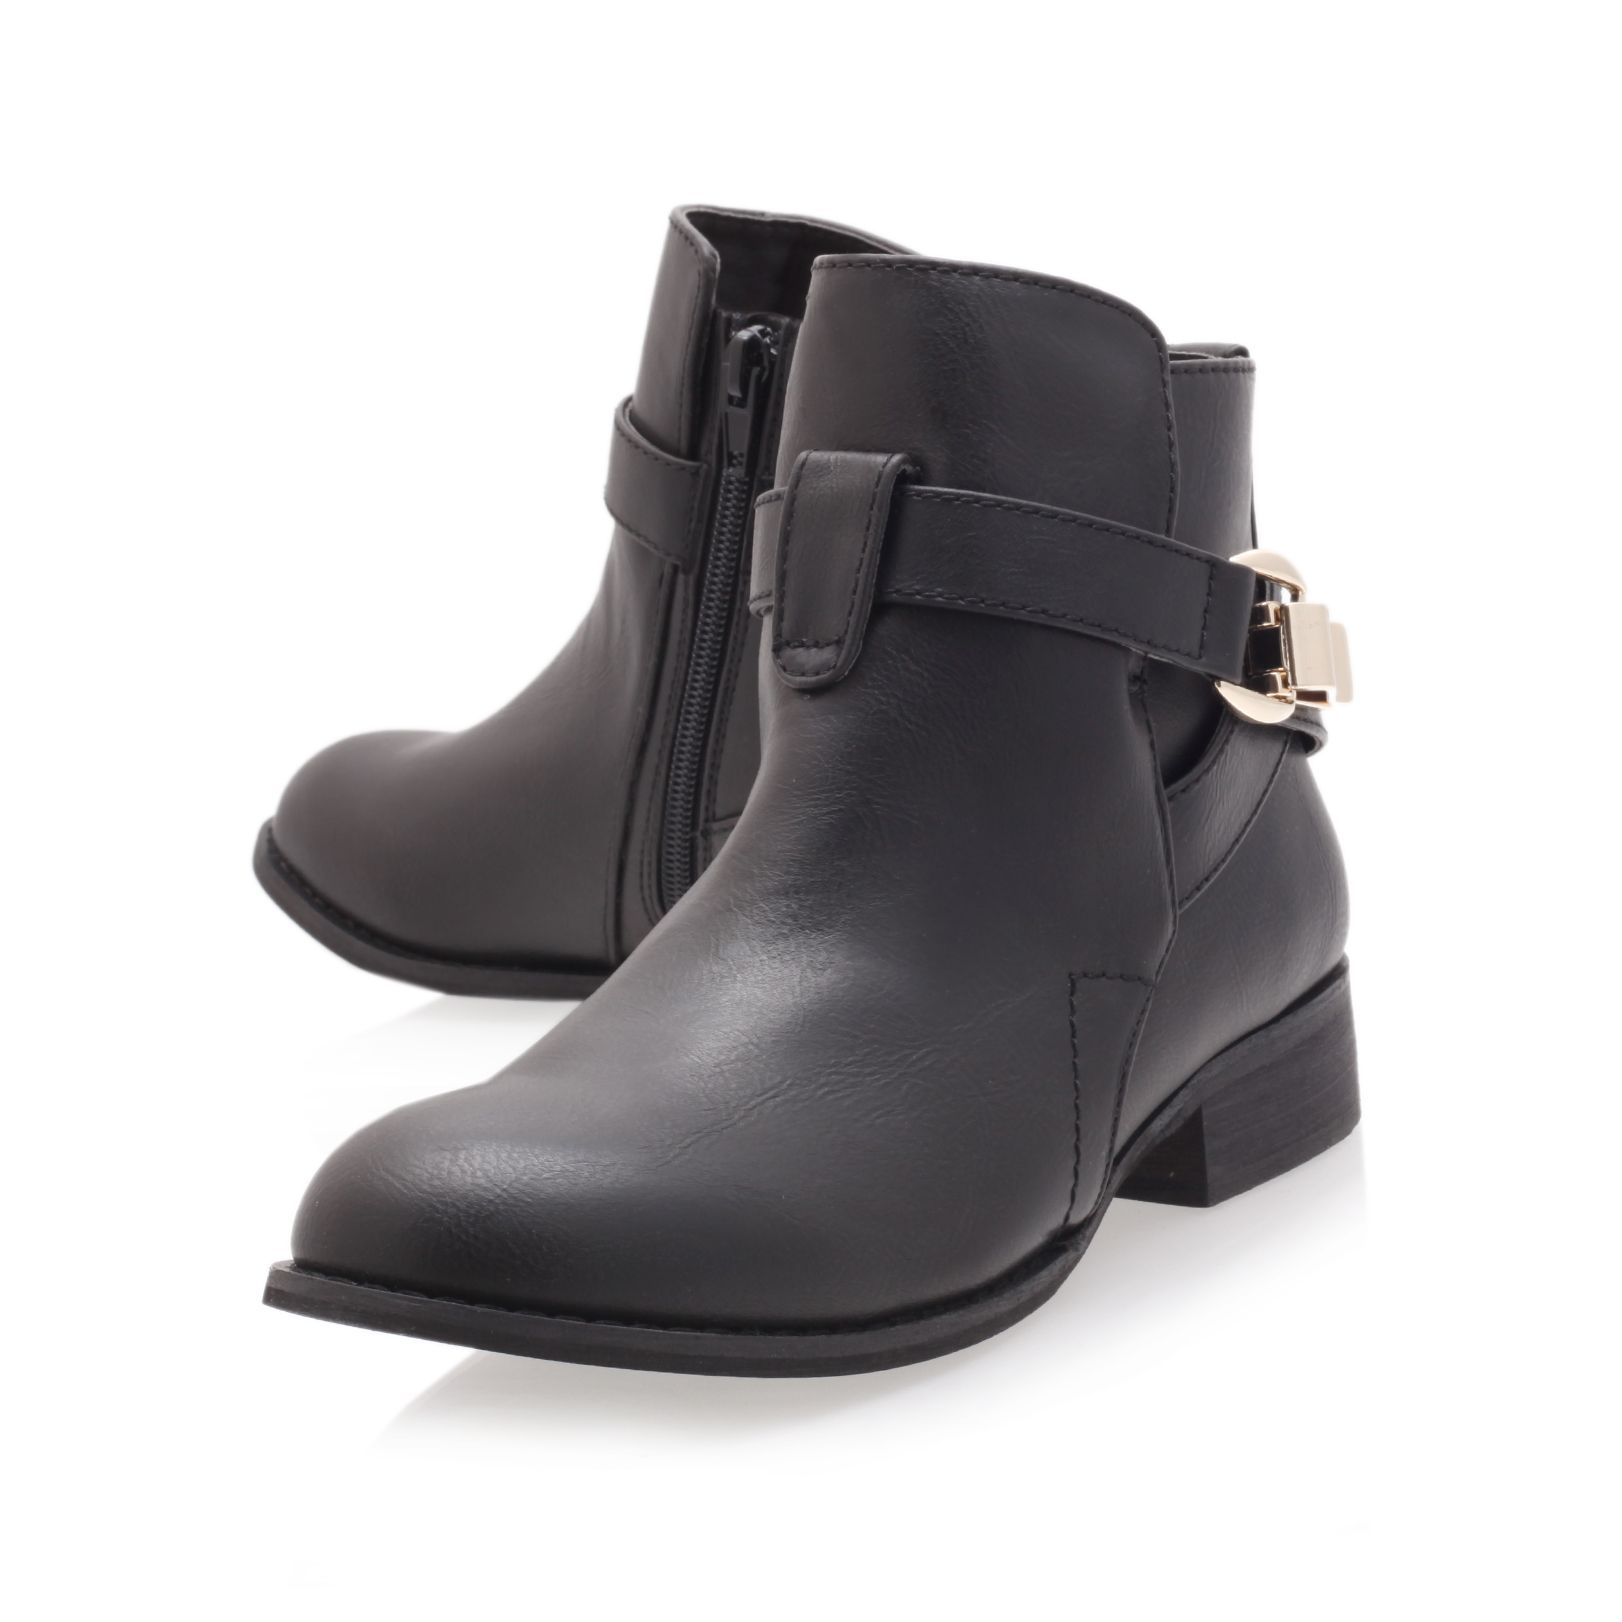 Bambi ankle boots